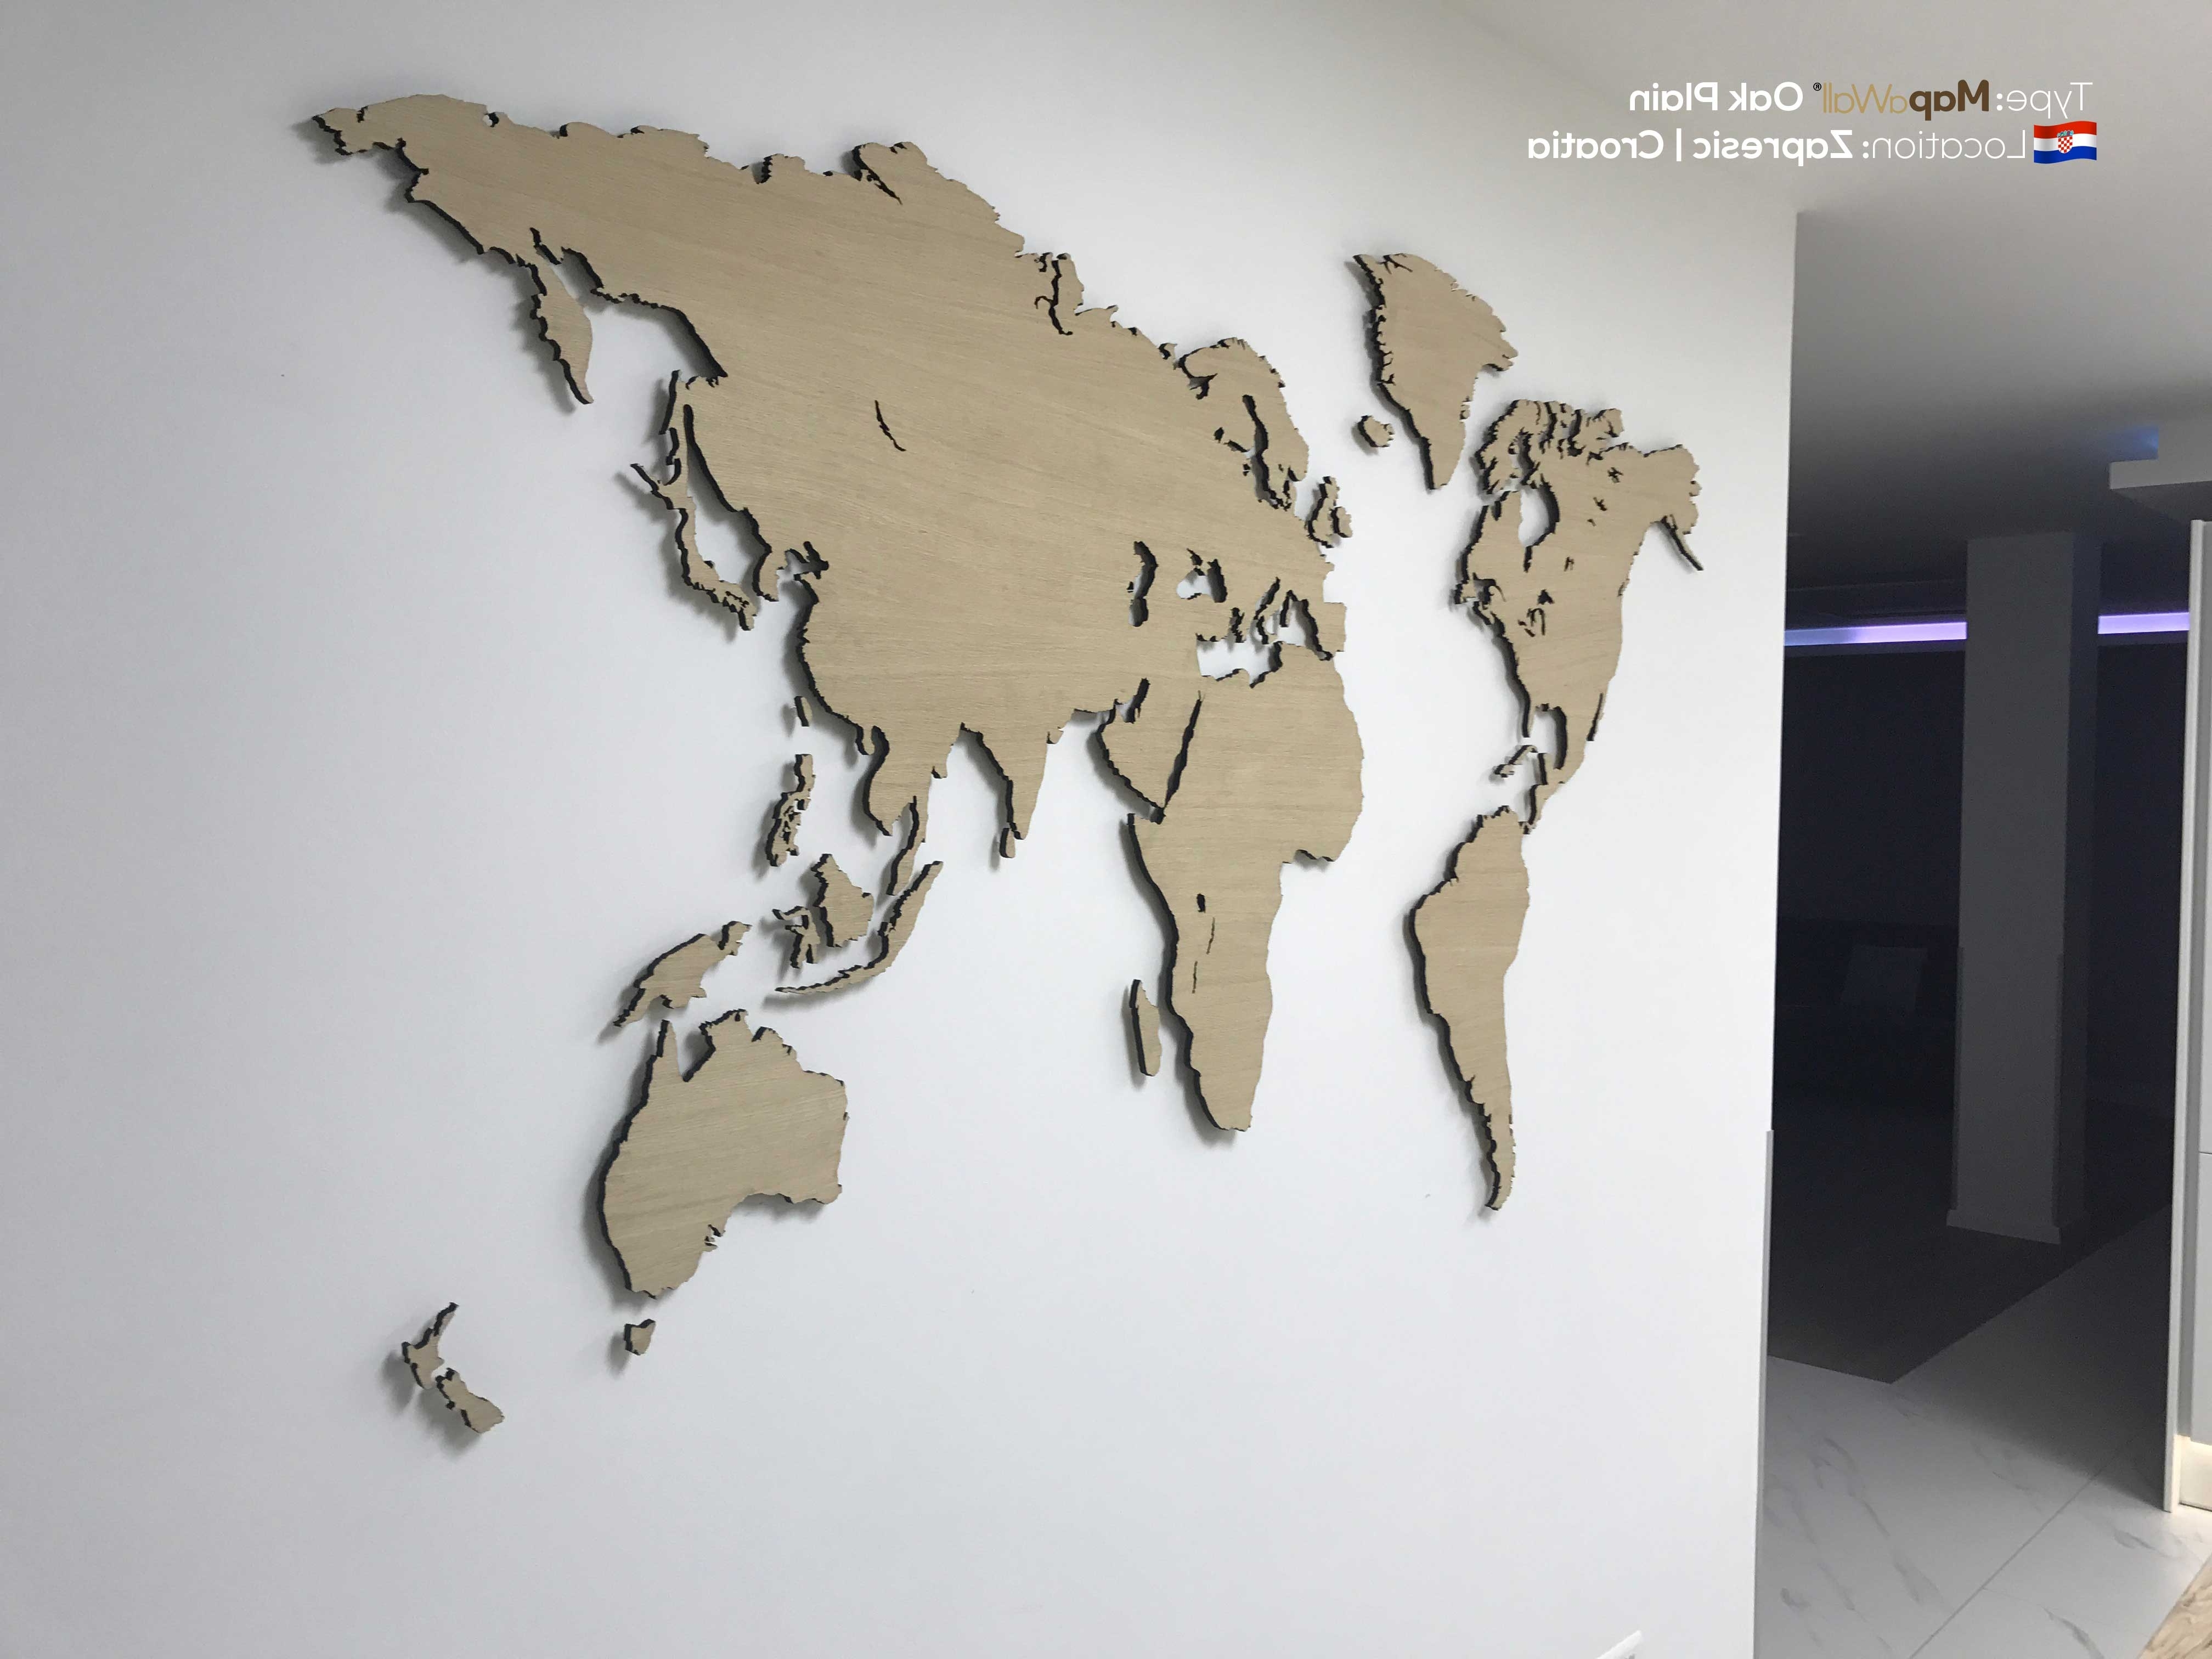 Well Known World Map Wood Wall Art Inside Amazing Decoration World Map Wood Wall Art Clever Throughout (View 8 of 15)